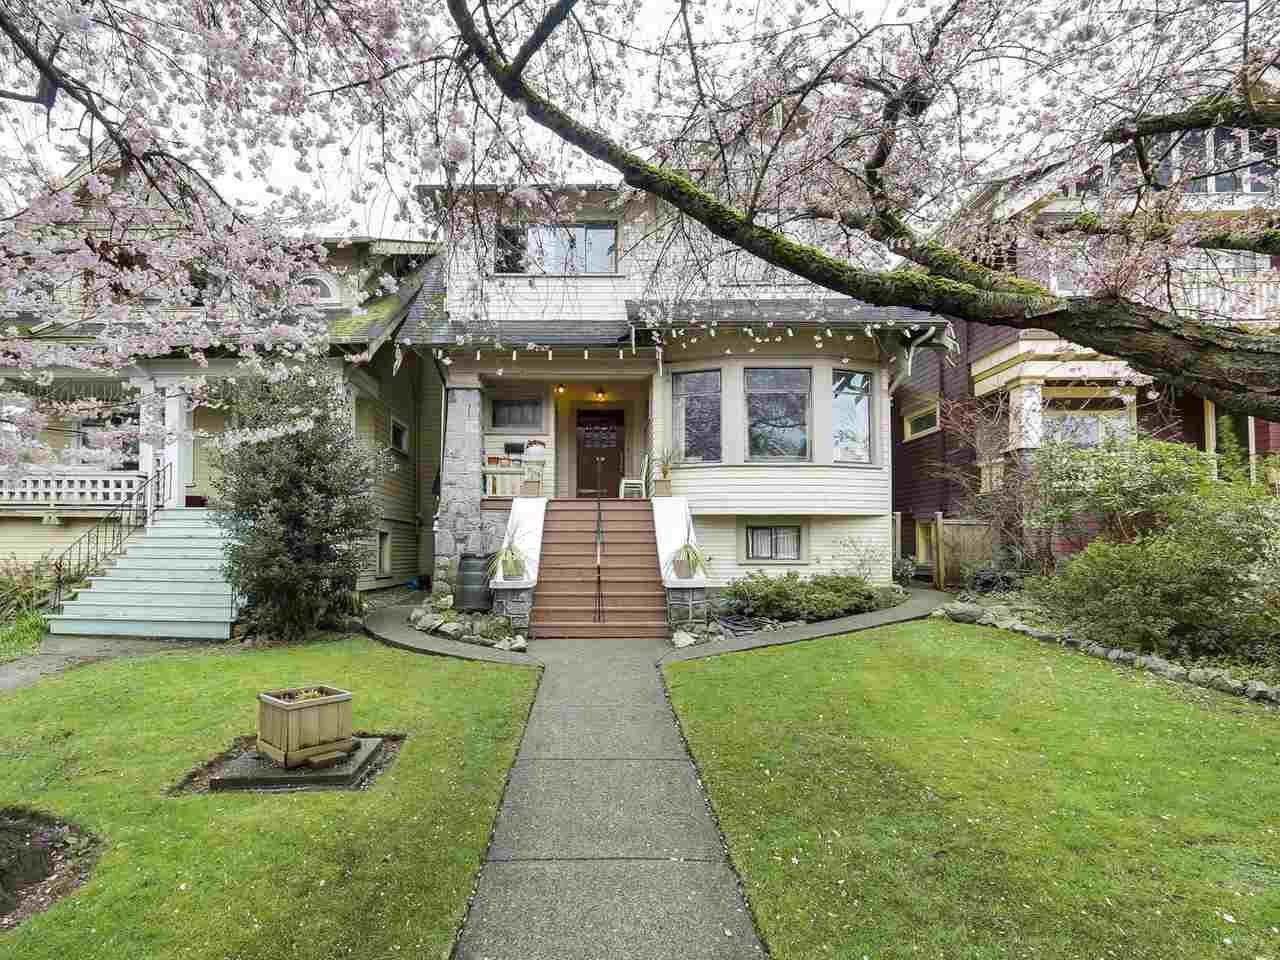 Main Photo: 3210 W 2ND Avenue in Vancouver: Kitsilano House for sale (Vancouver West)  : MLS®# R2154141